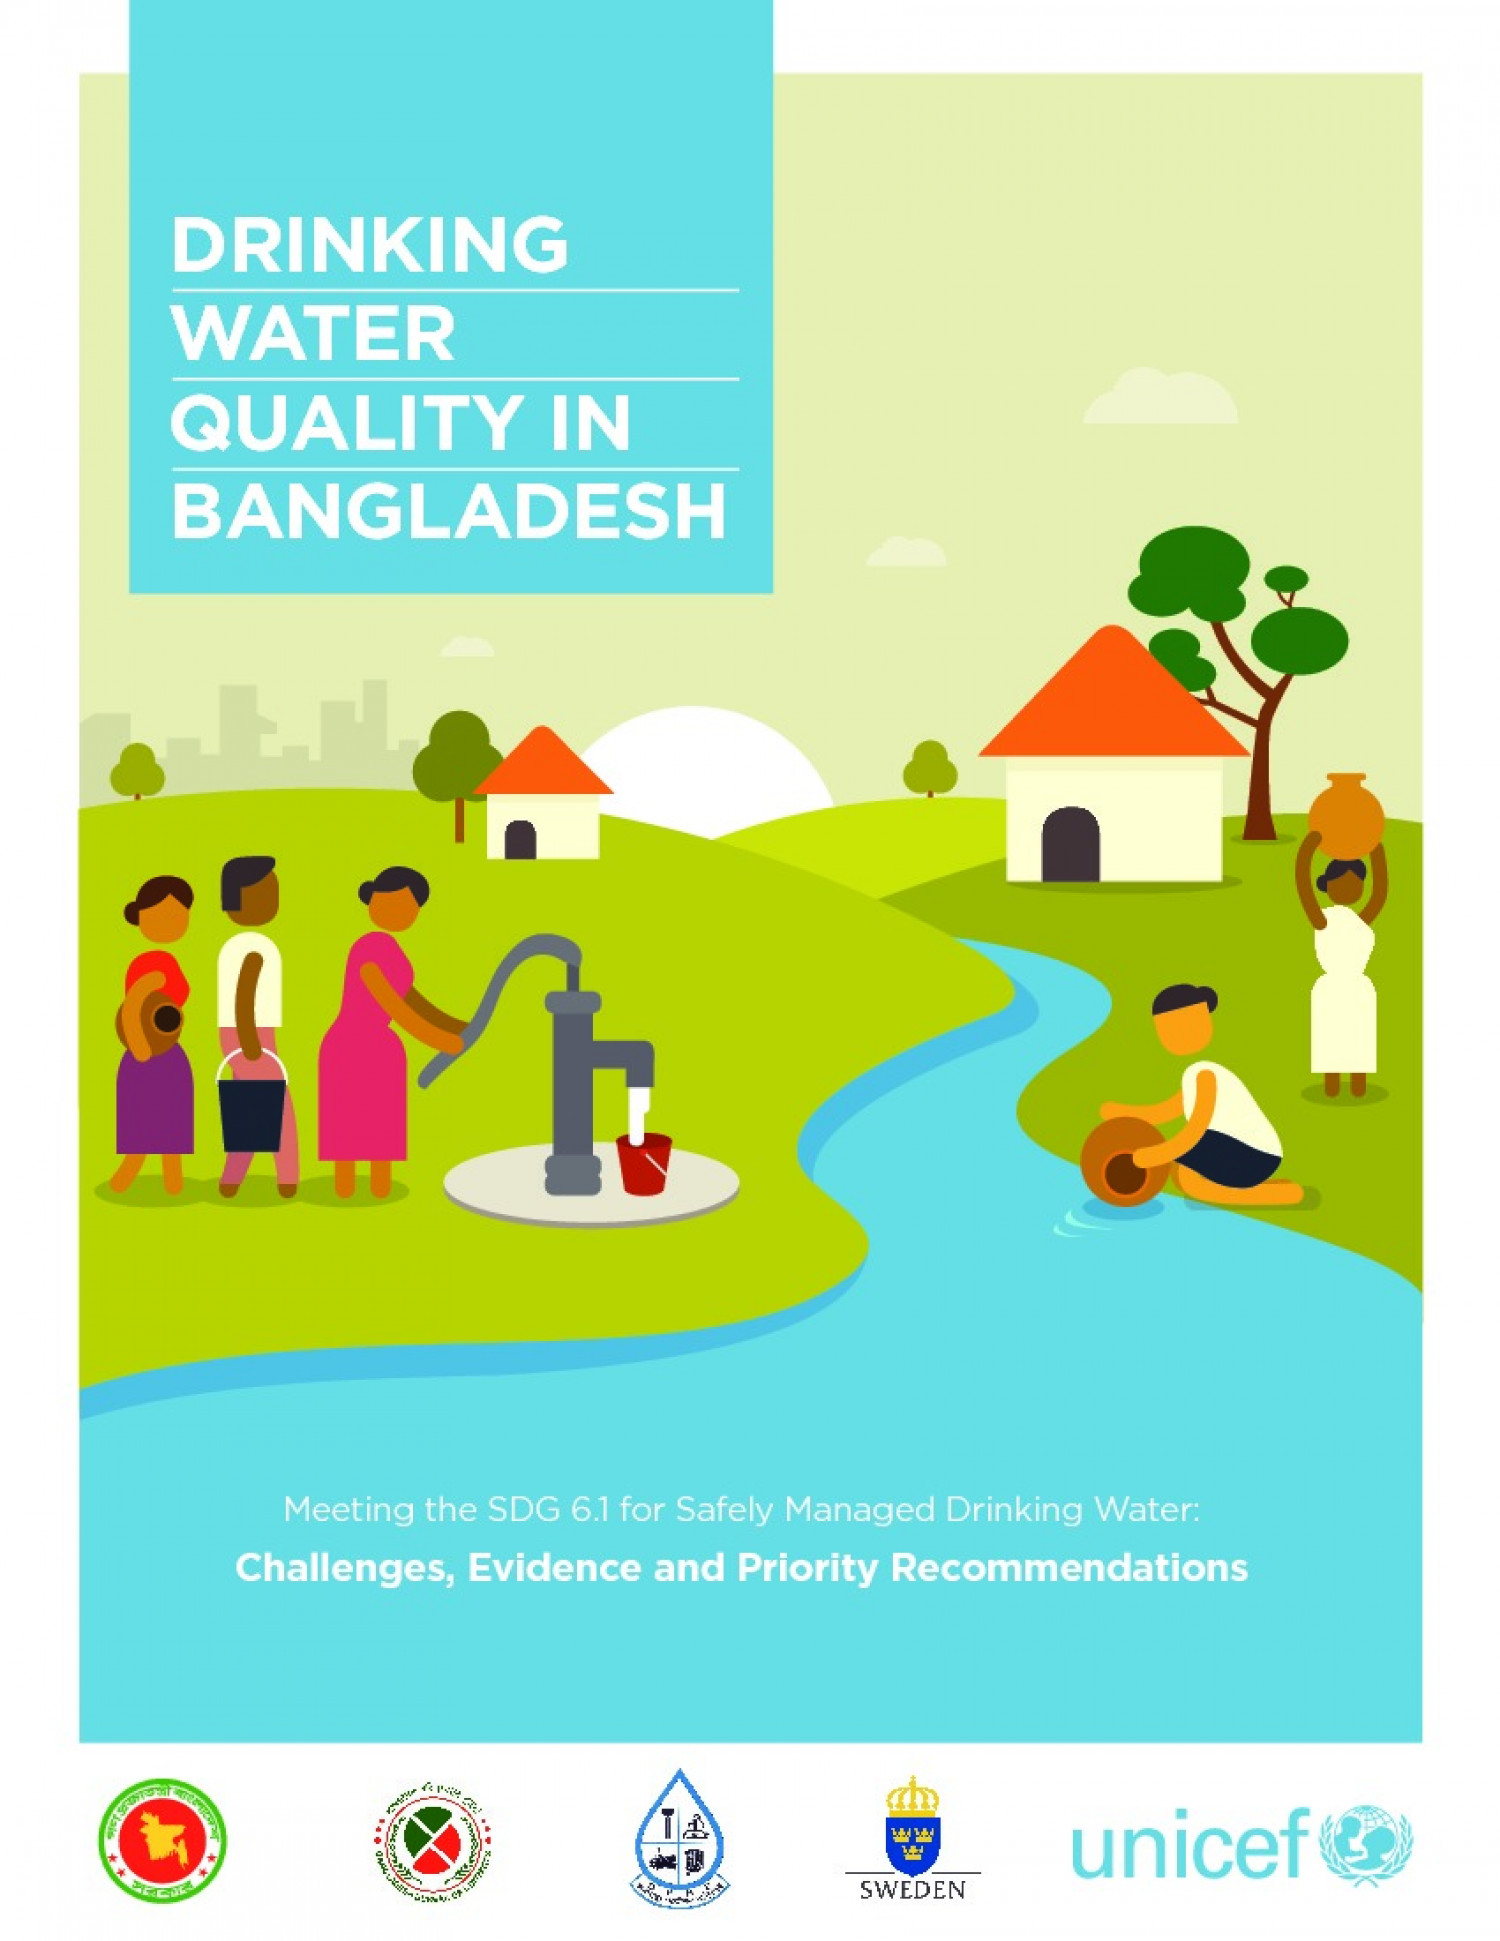 DRINKING WATER QUALITY IN BANGLADESH Infographic